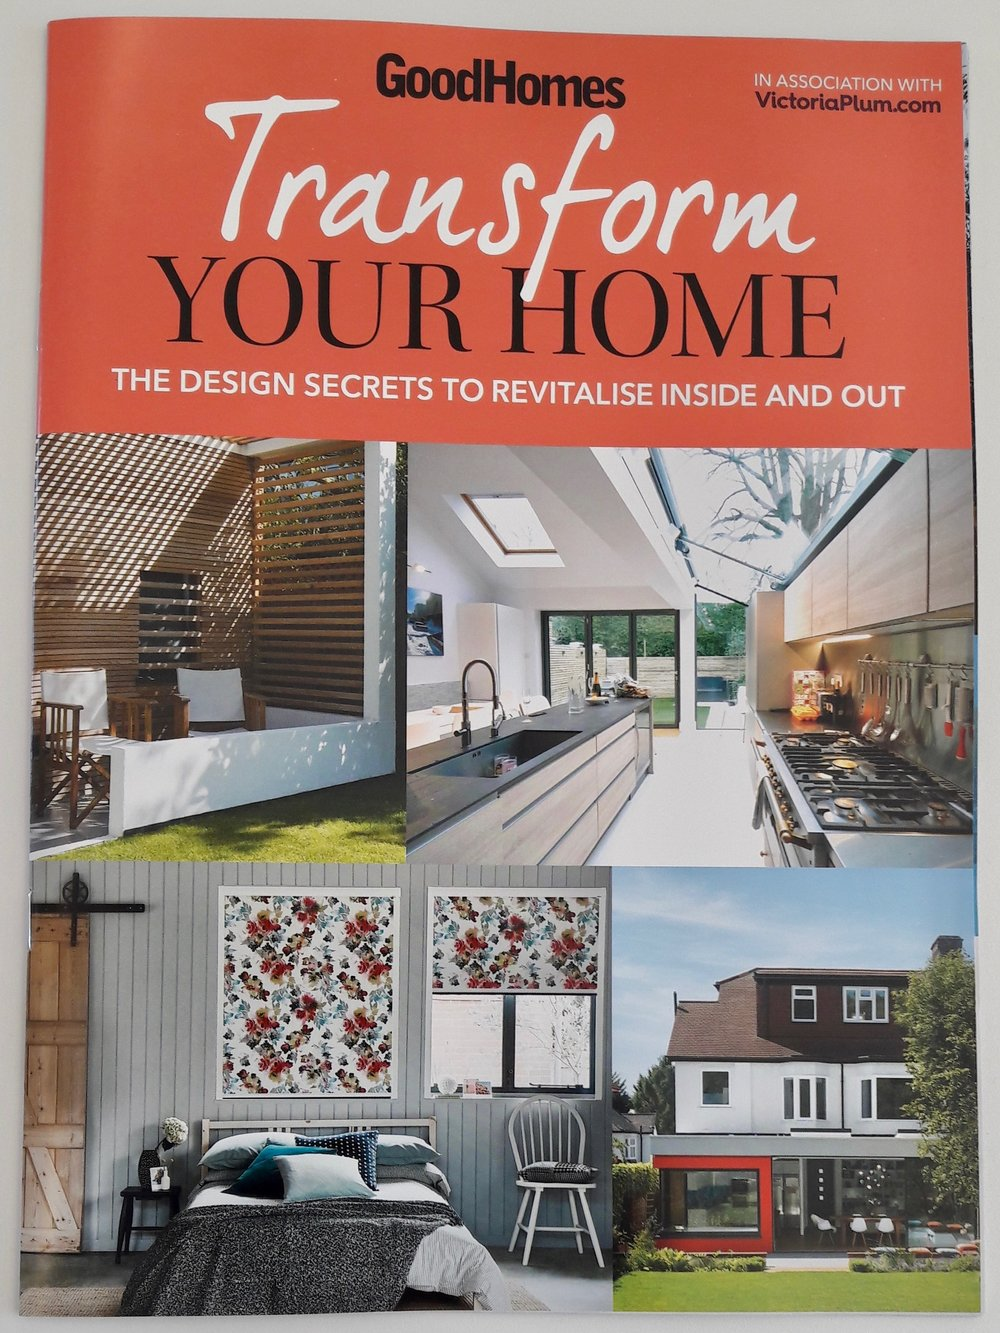 18 11_Good Homes_Transform Your Home